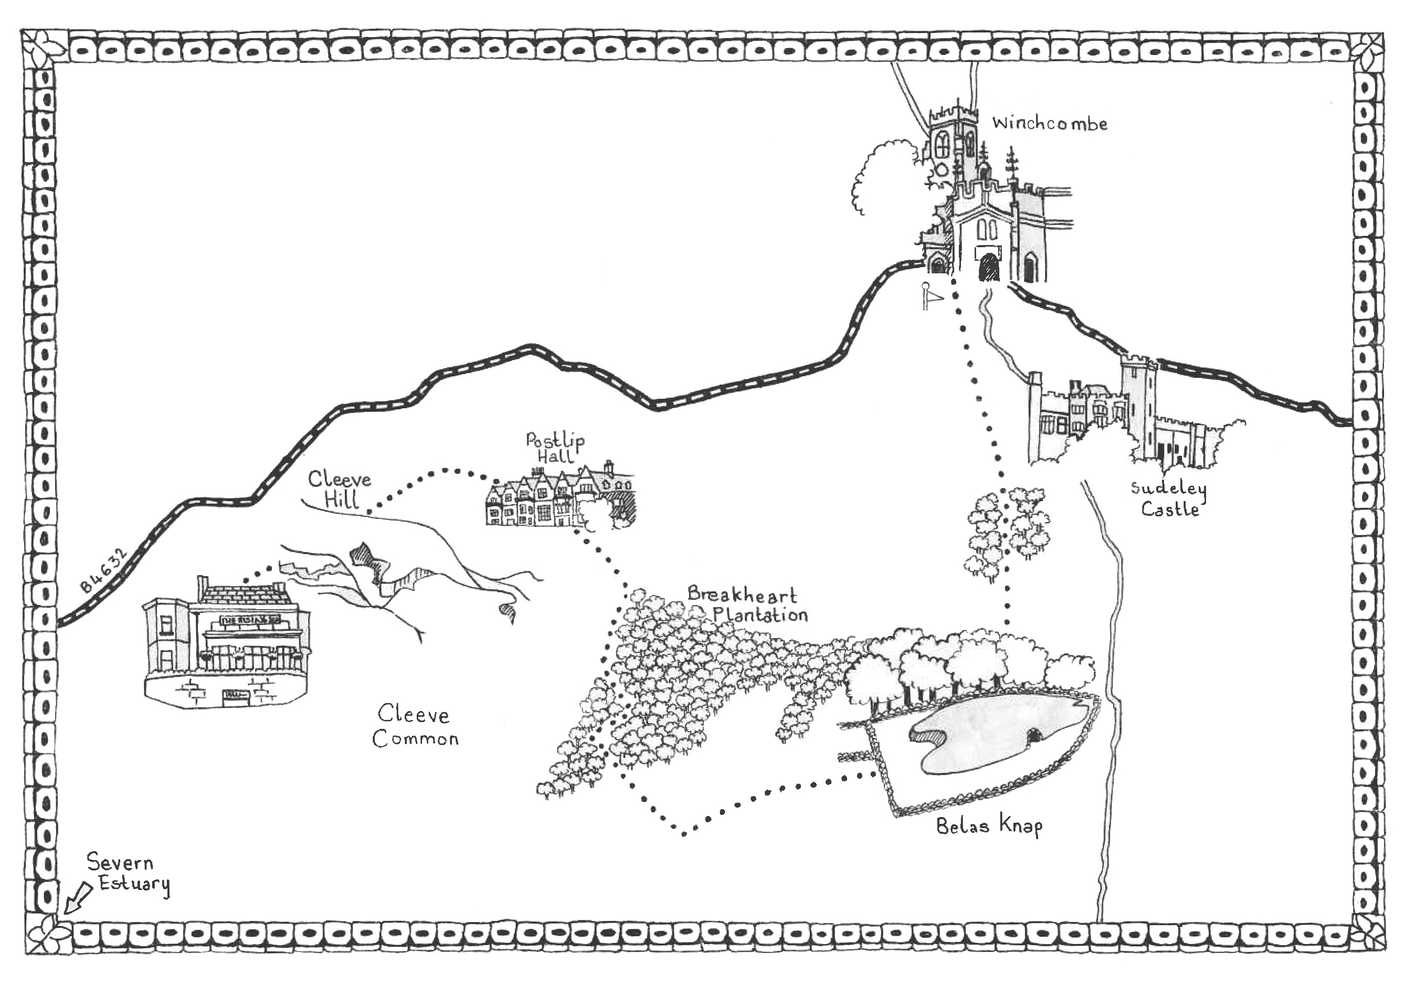 Walk 5, The Cotswolds Map Illustration